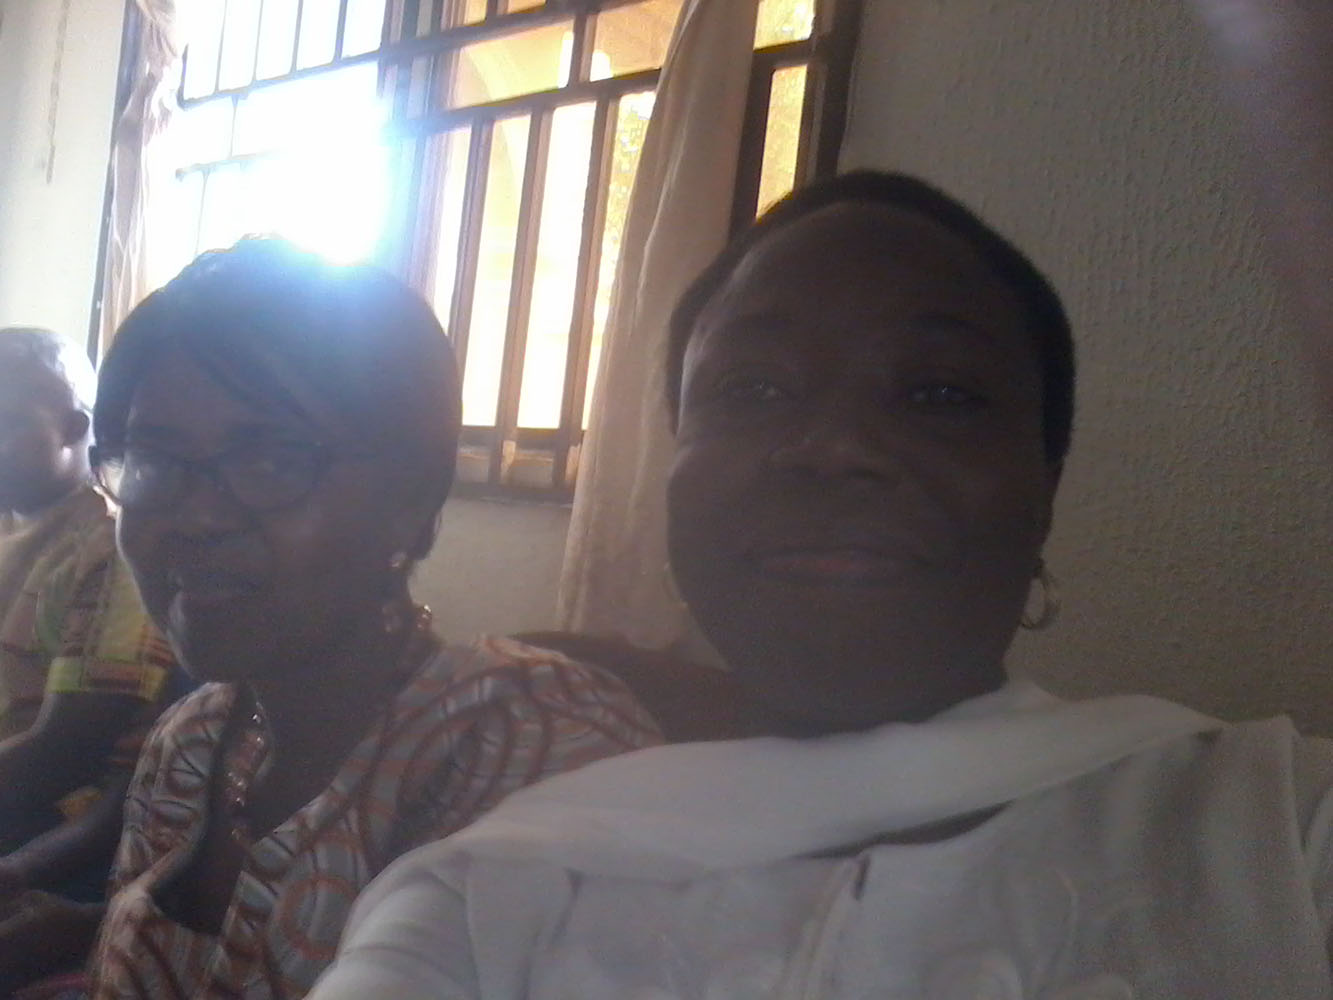 Prof G.M.T Emezue and Prof Akachi Ezeigbo in the house of Dr Evaristus Emeghara, during the burial of Dr Emeghara's mother on 21st of July, 2017.